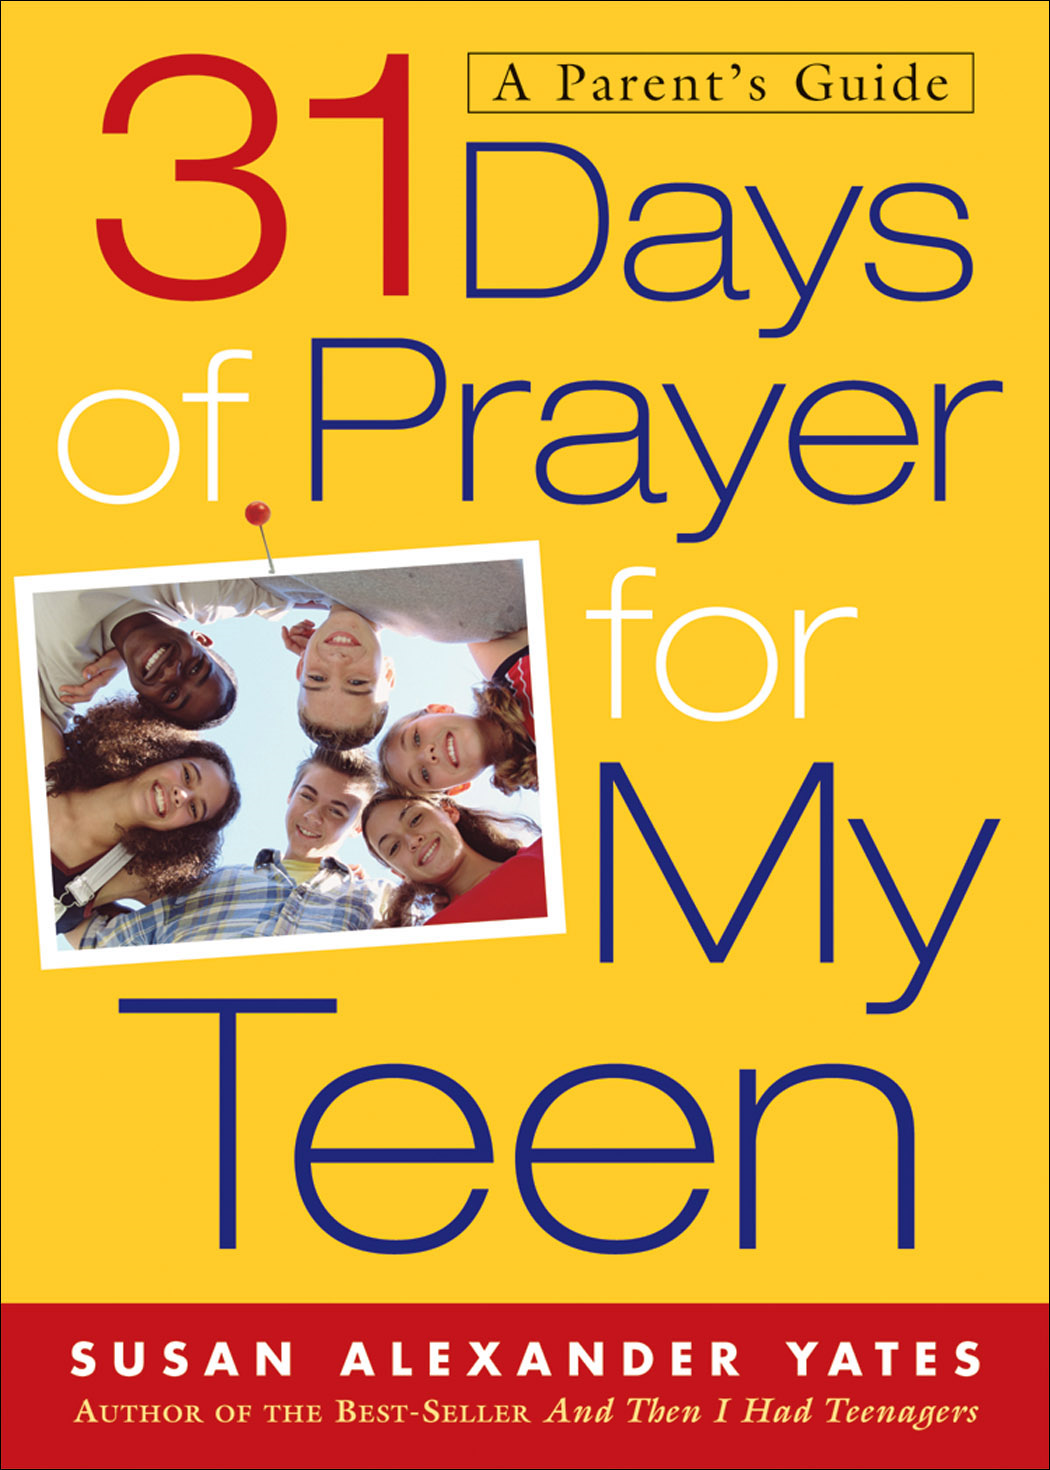 31 Days of Prayer for My Teen